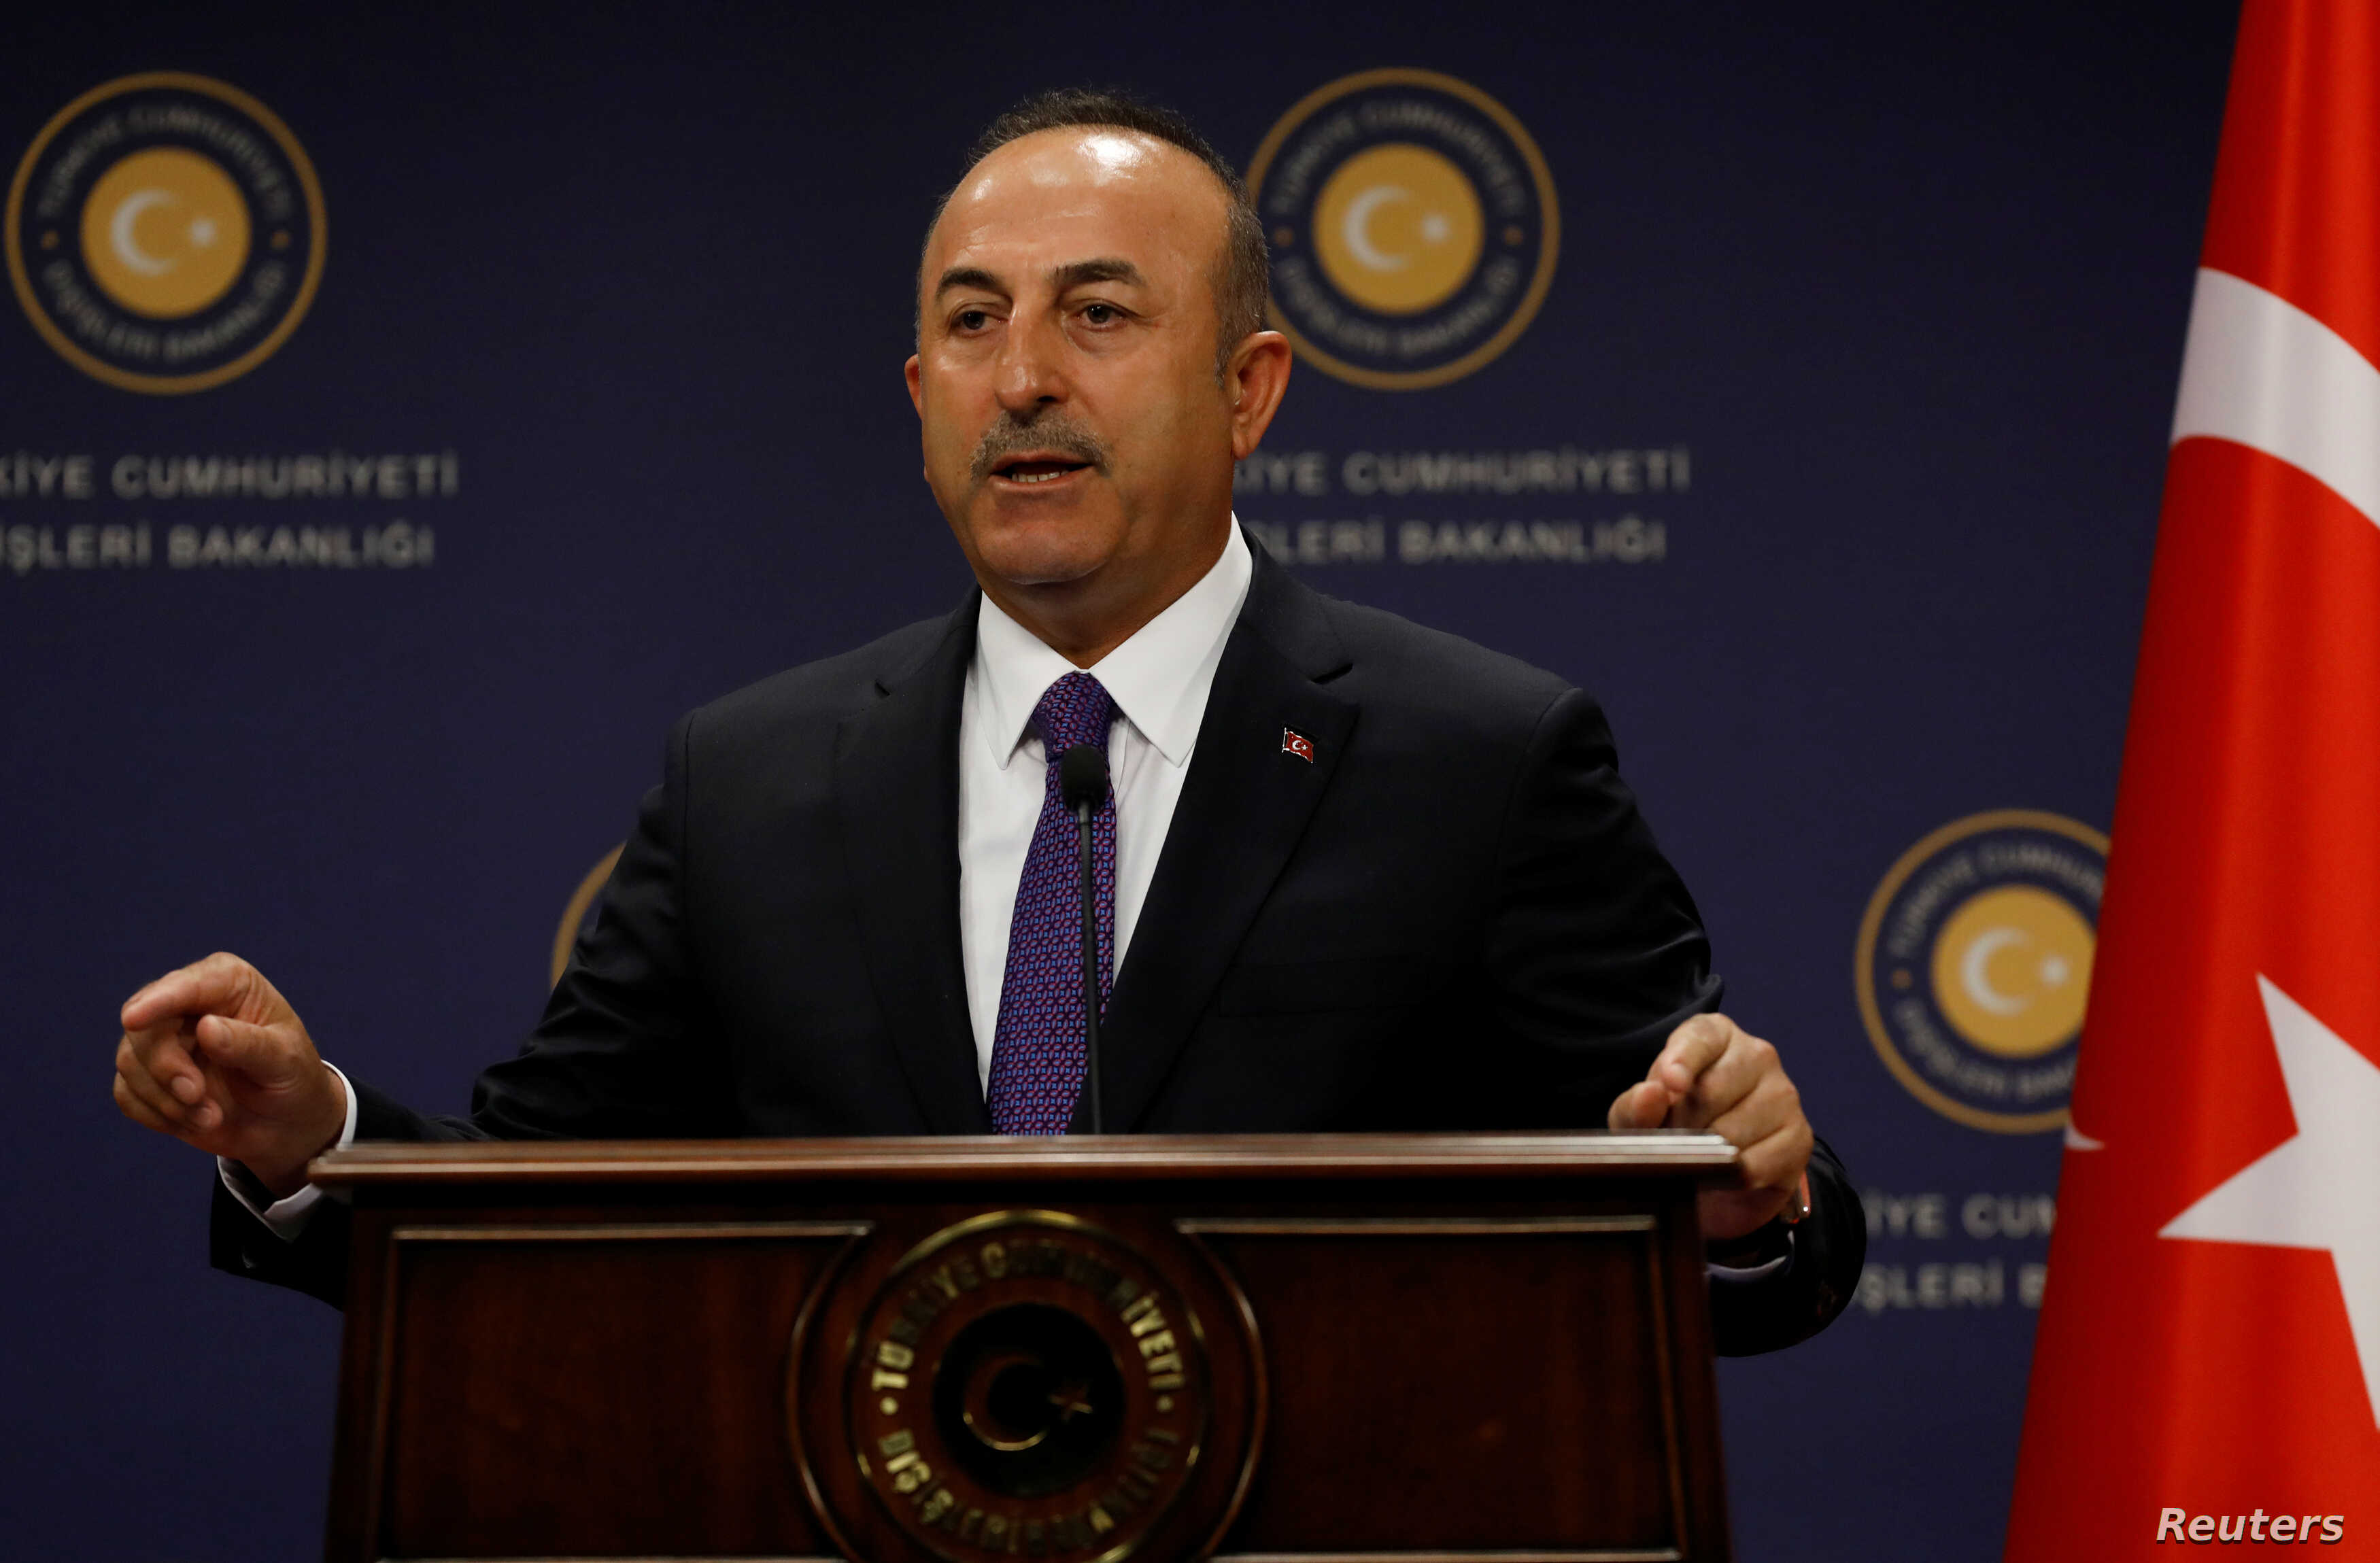 Turkish Foreign Minister Mevlut Cavusoglu gestures during a news conference in Ankara, Turkey, April 16, 2018.